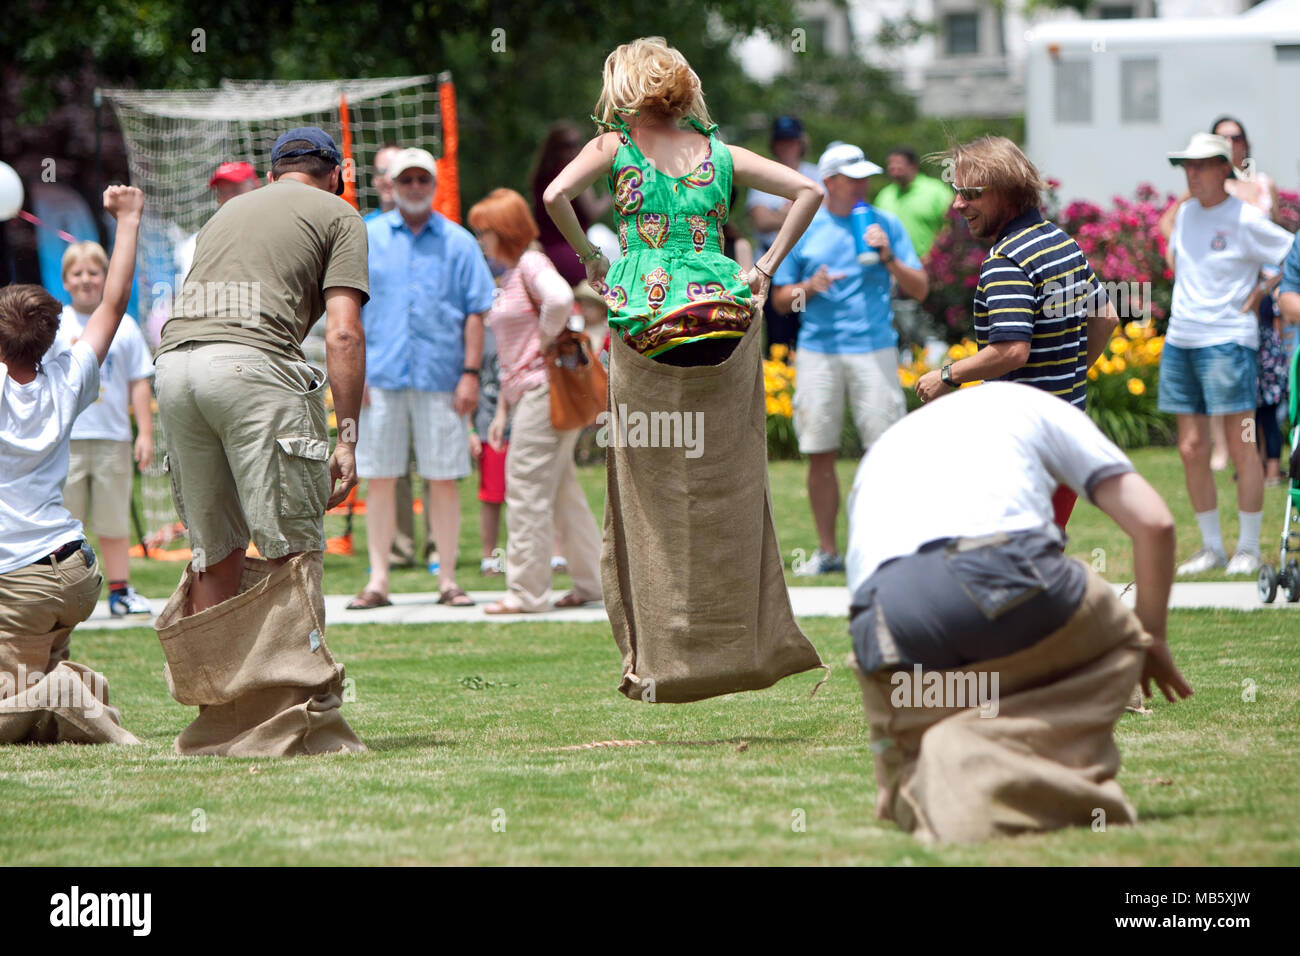 Several people compete in a sack race at the GREAT festival, a spring festival celebrating Great Britain and the UK on May 25, 2012 in Atlanta, GA. Stock Photo